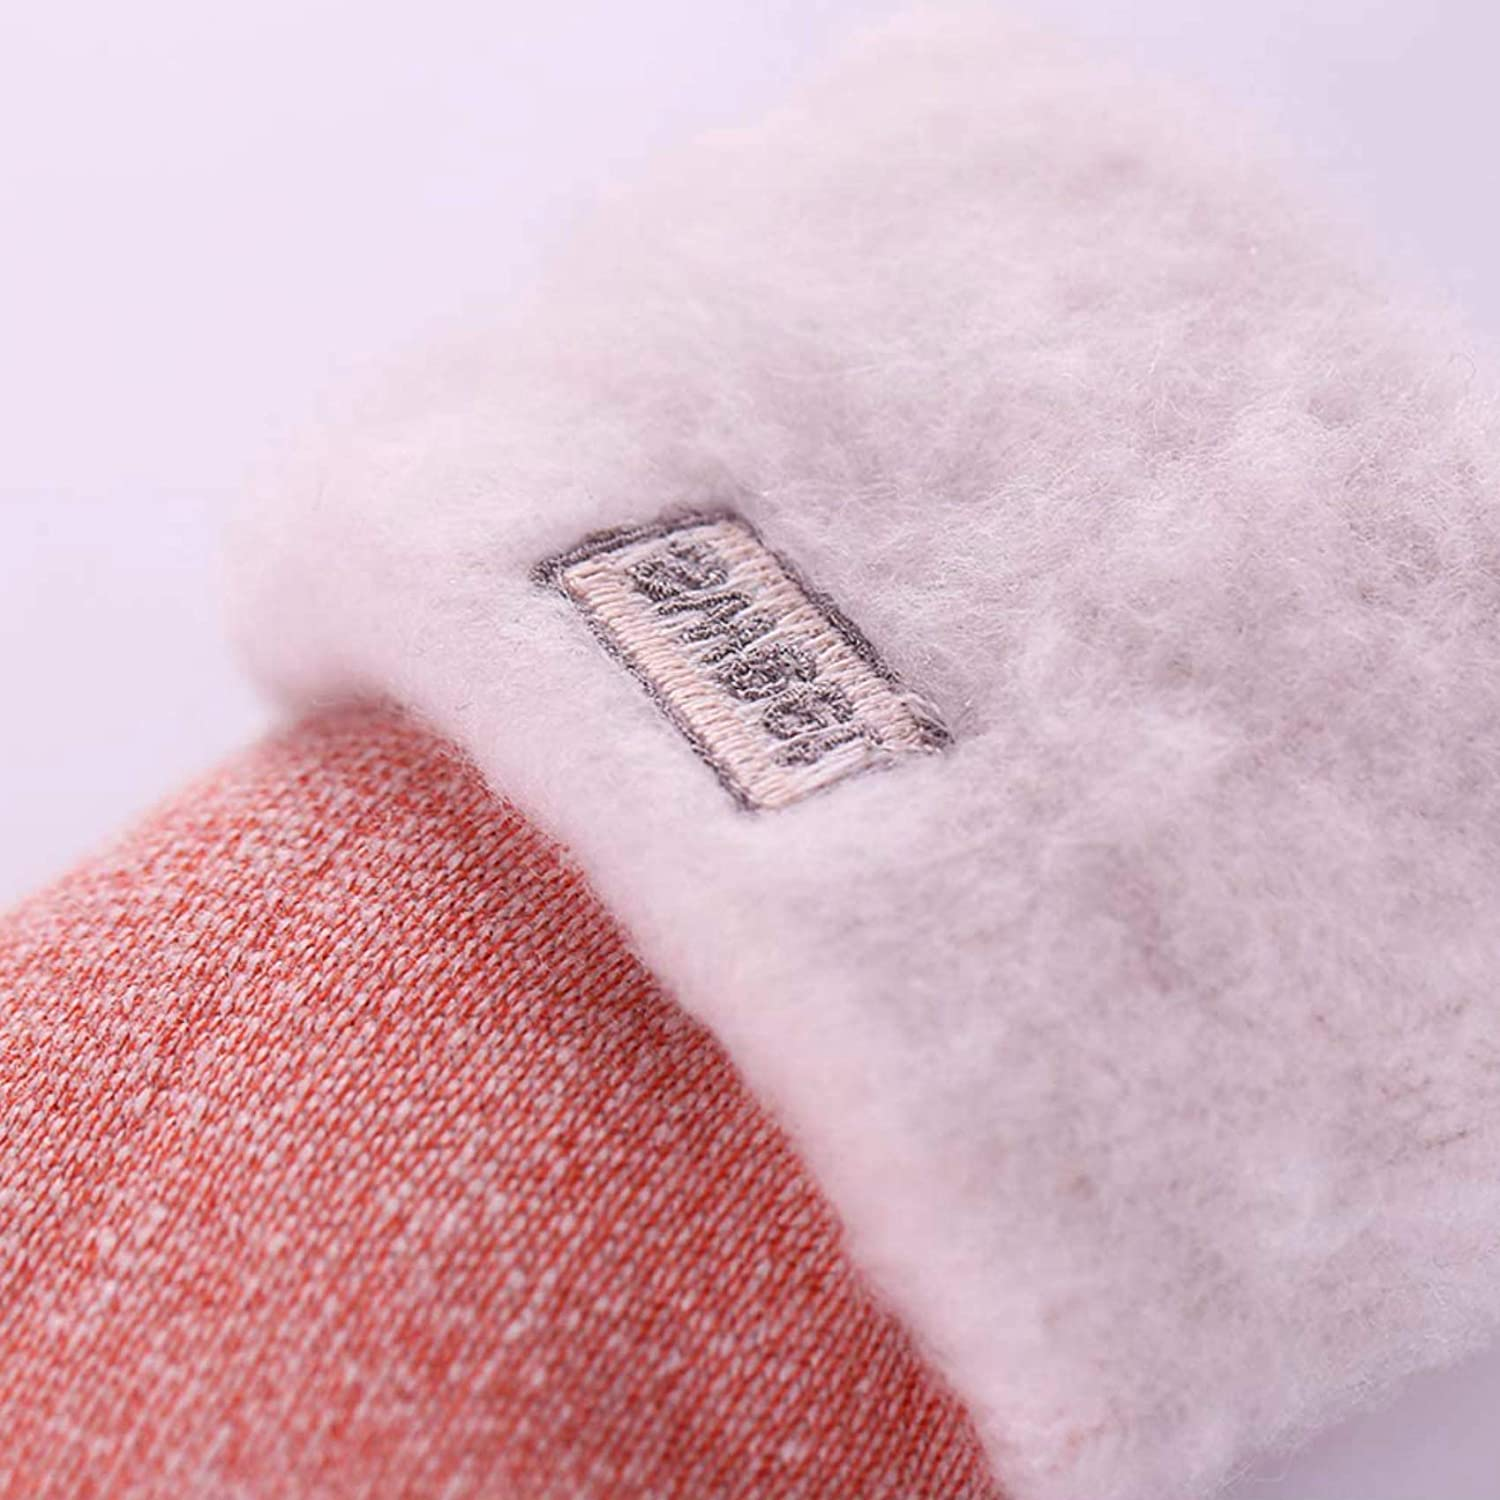 Hissox Soft Warm Winter Crew Socks Lined Insulated Thick Heat Socks For Cold Weather Womens Thermal Socks